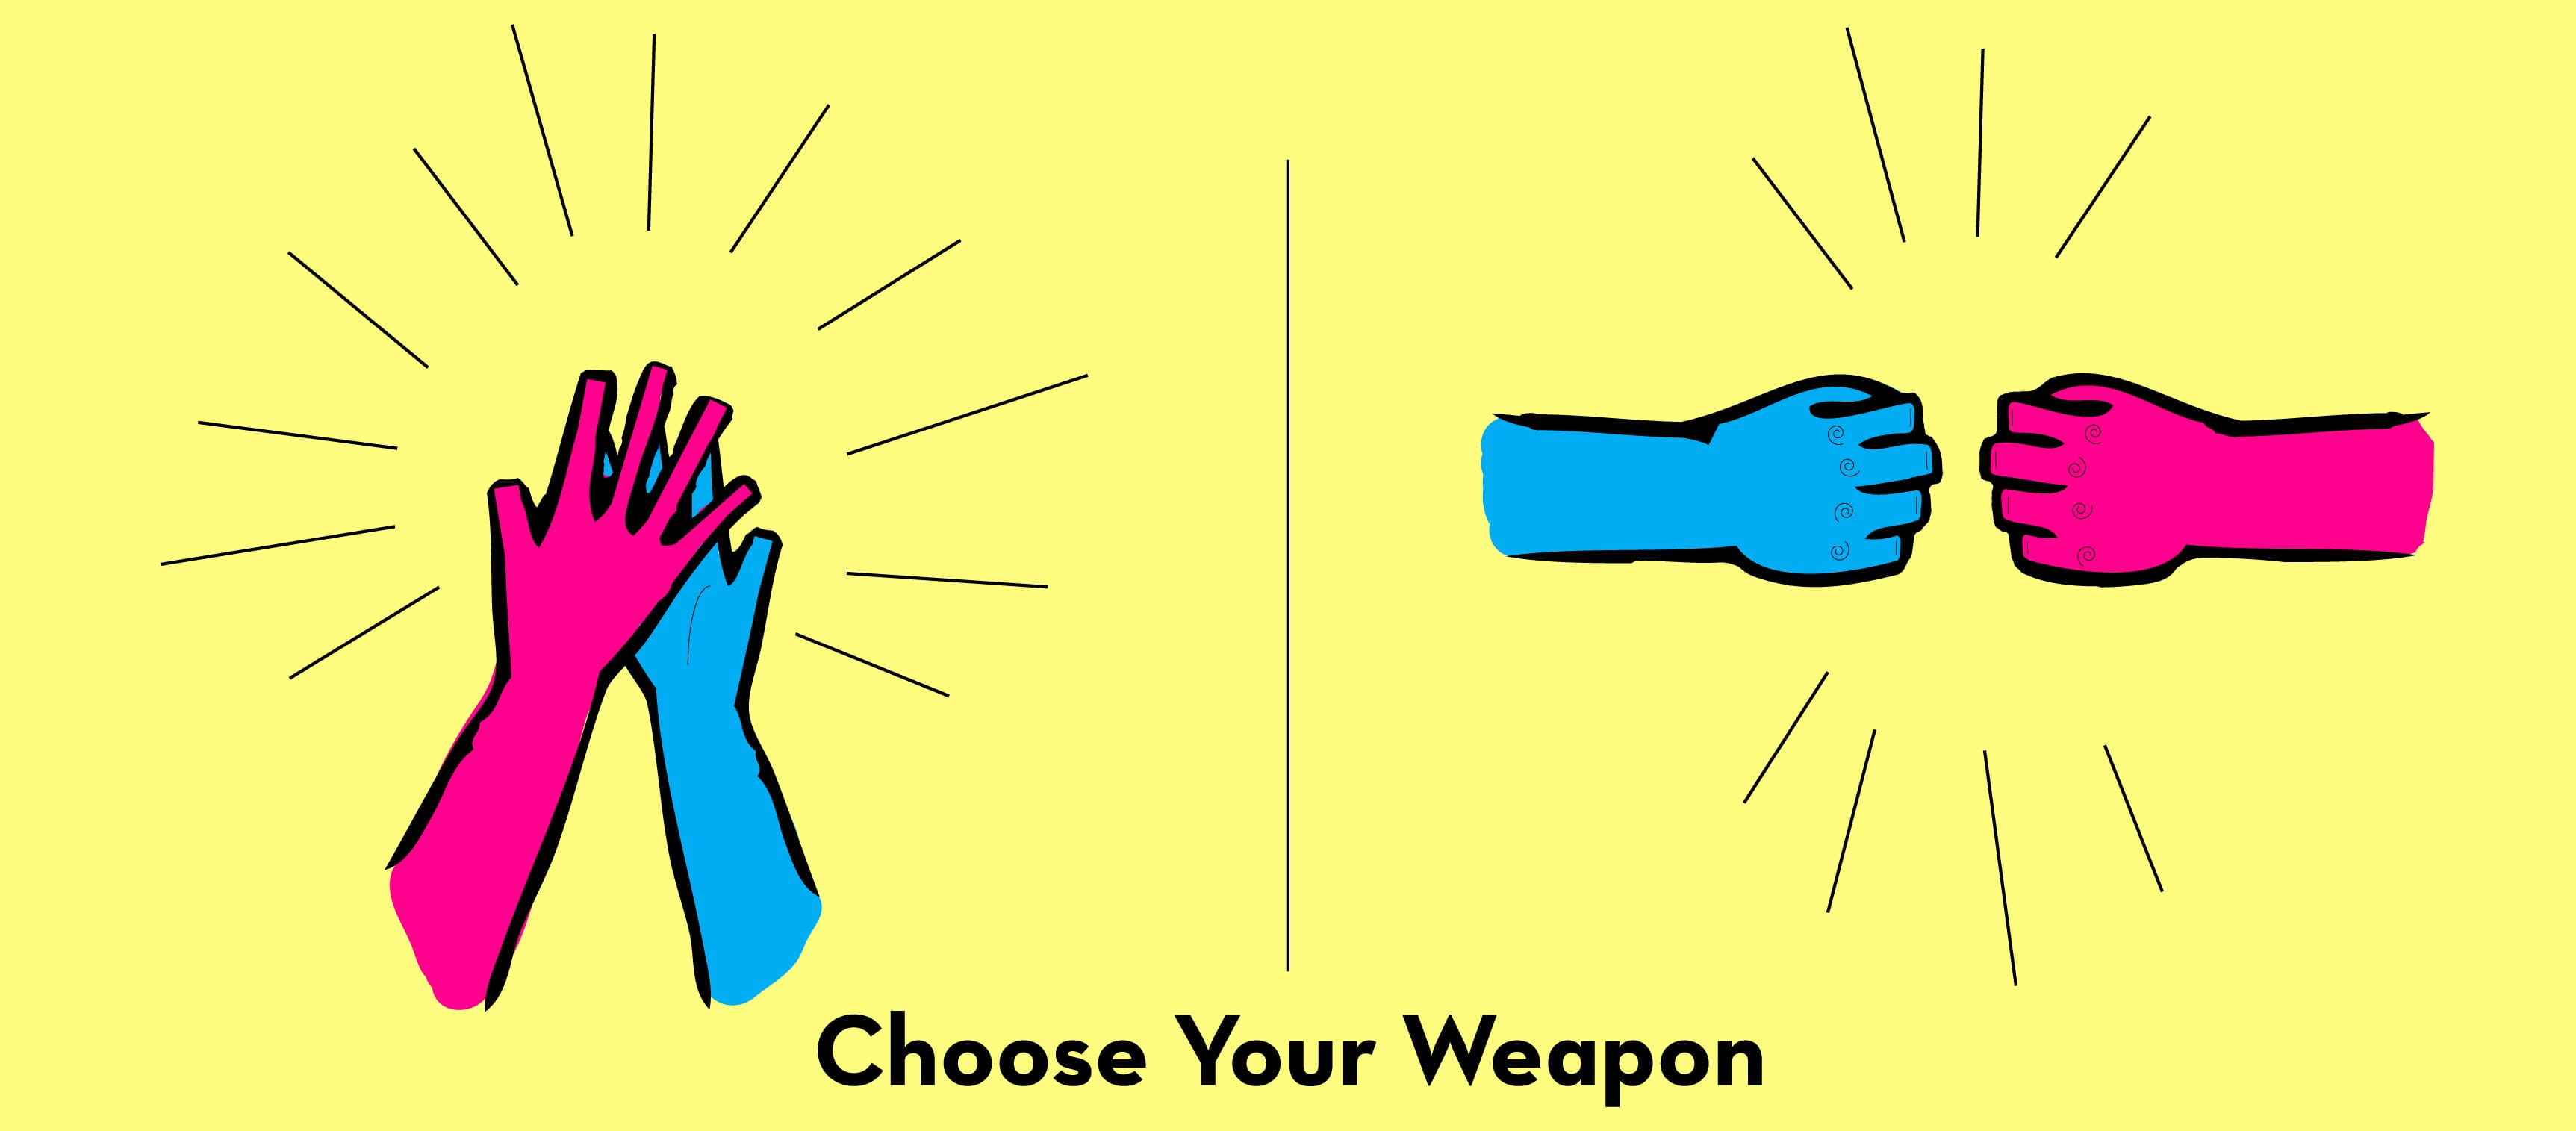 choose your weapon: 2 sets of hands, one fist bumping and one high-fiving.